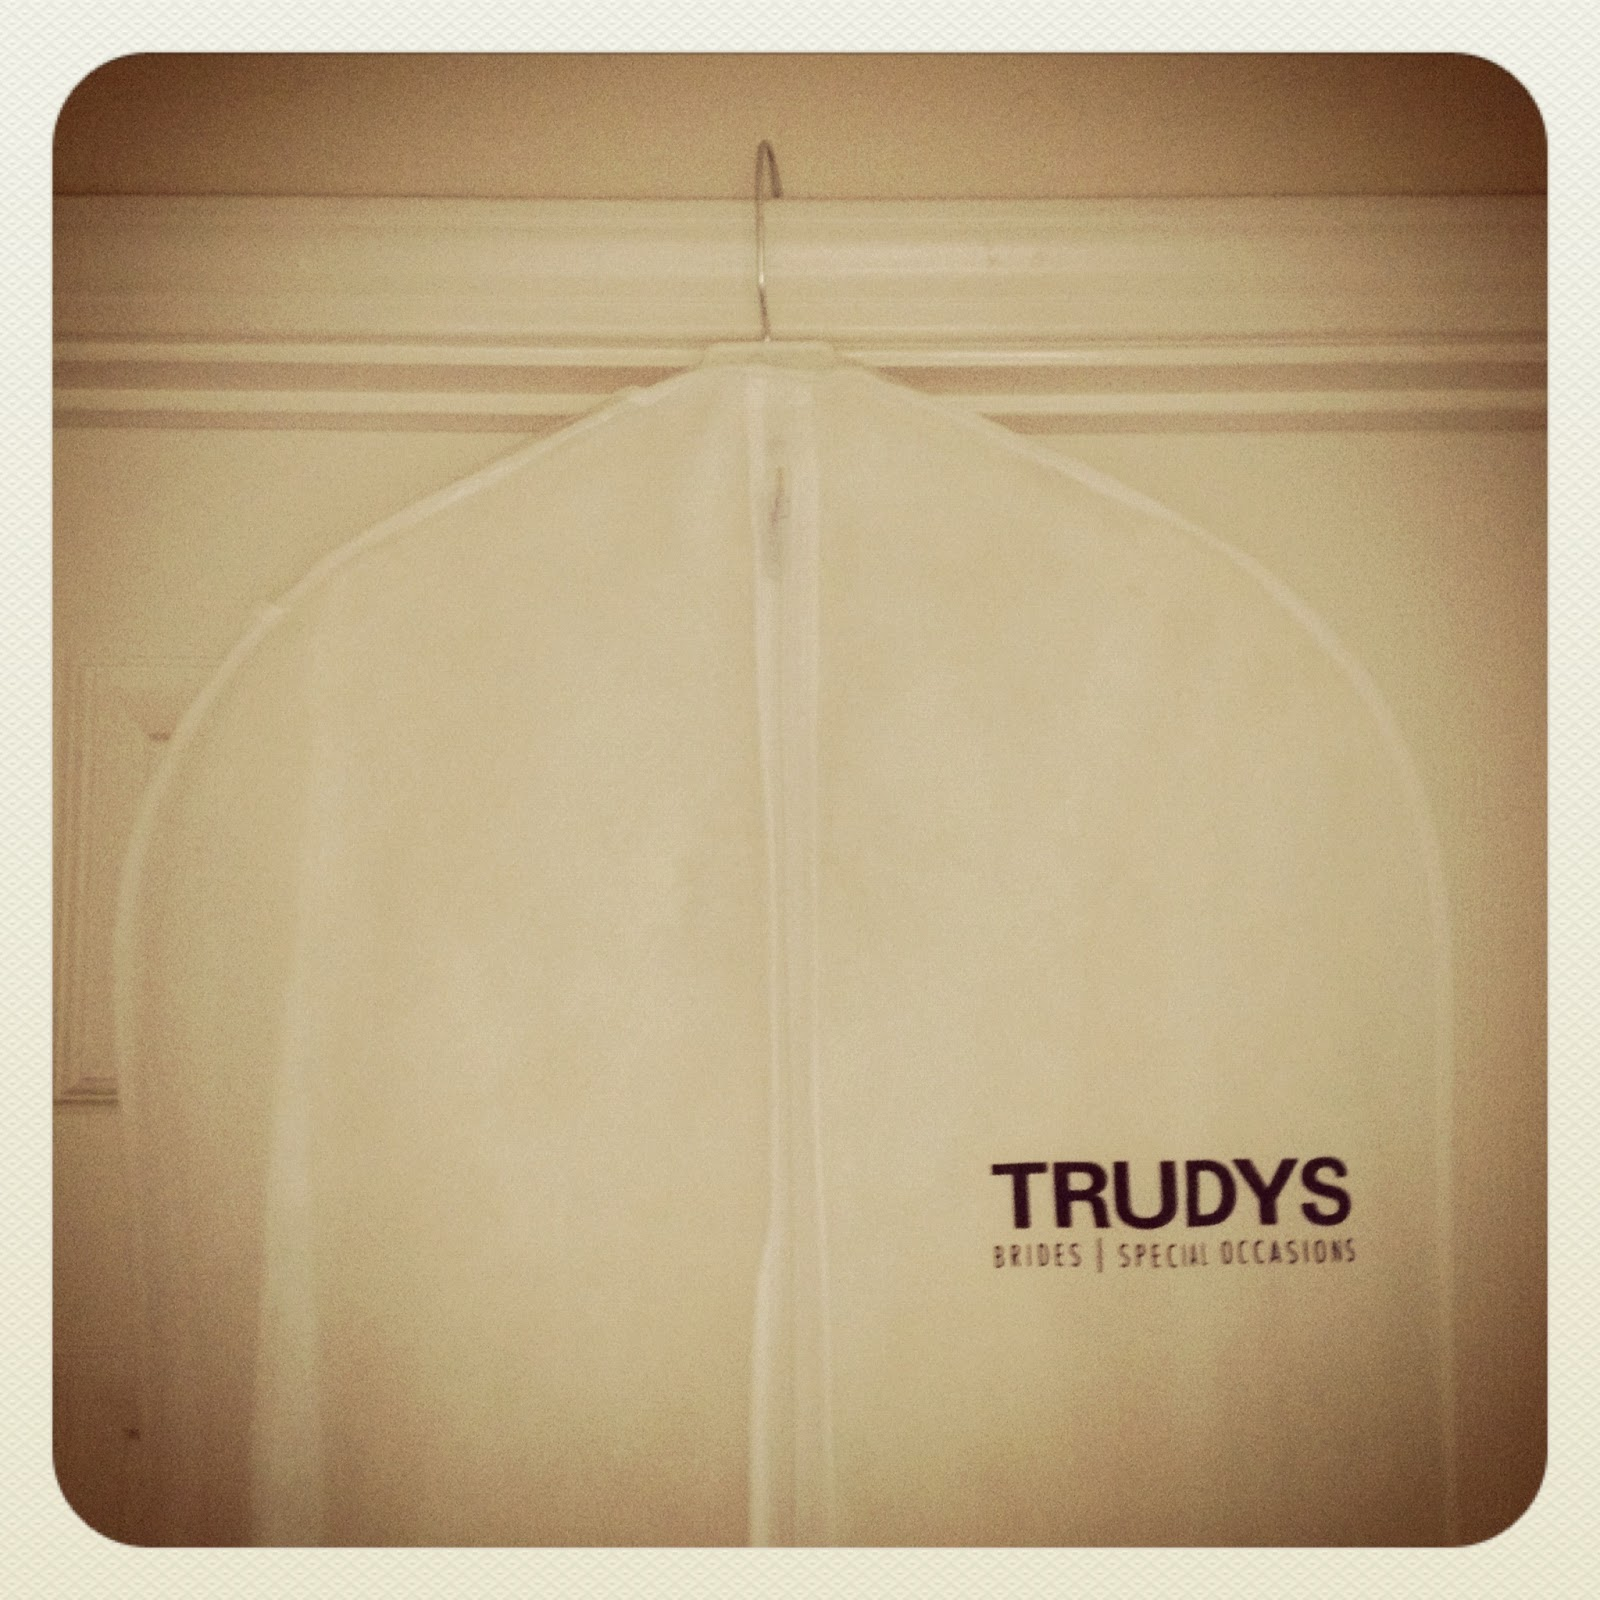 It's Because I Think Too Much - Trudy's Bridal Dress Bag